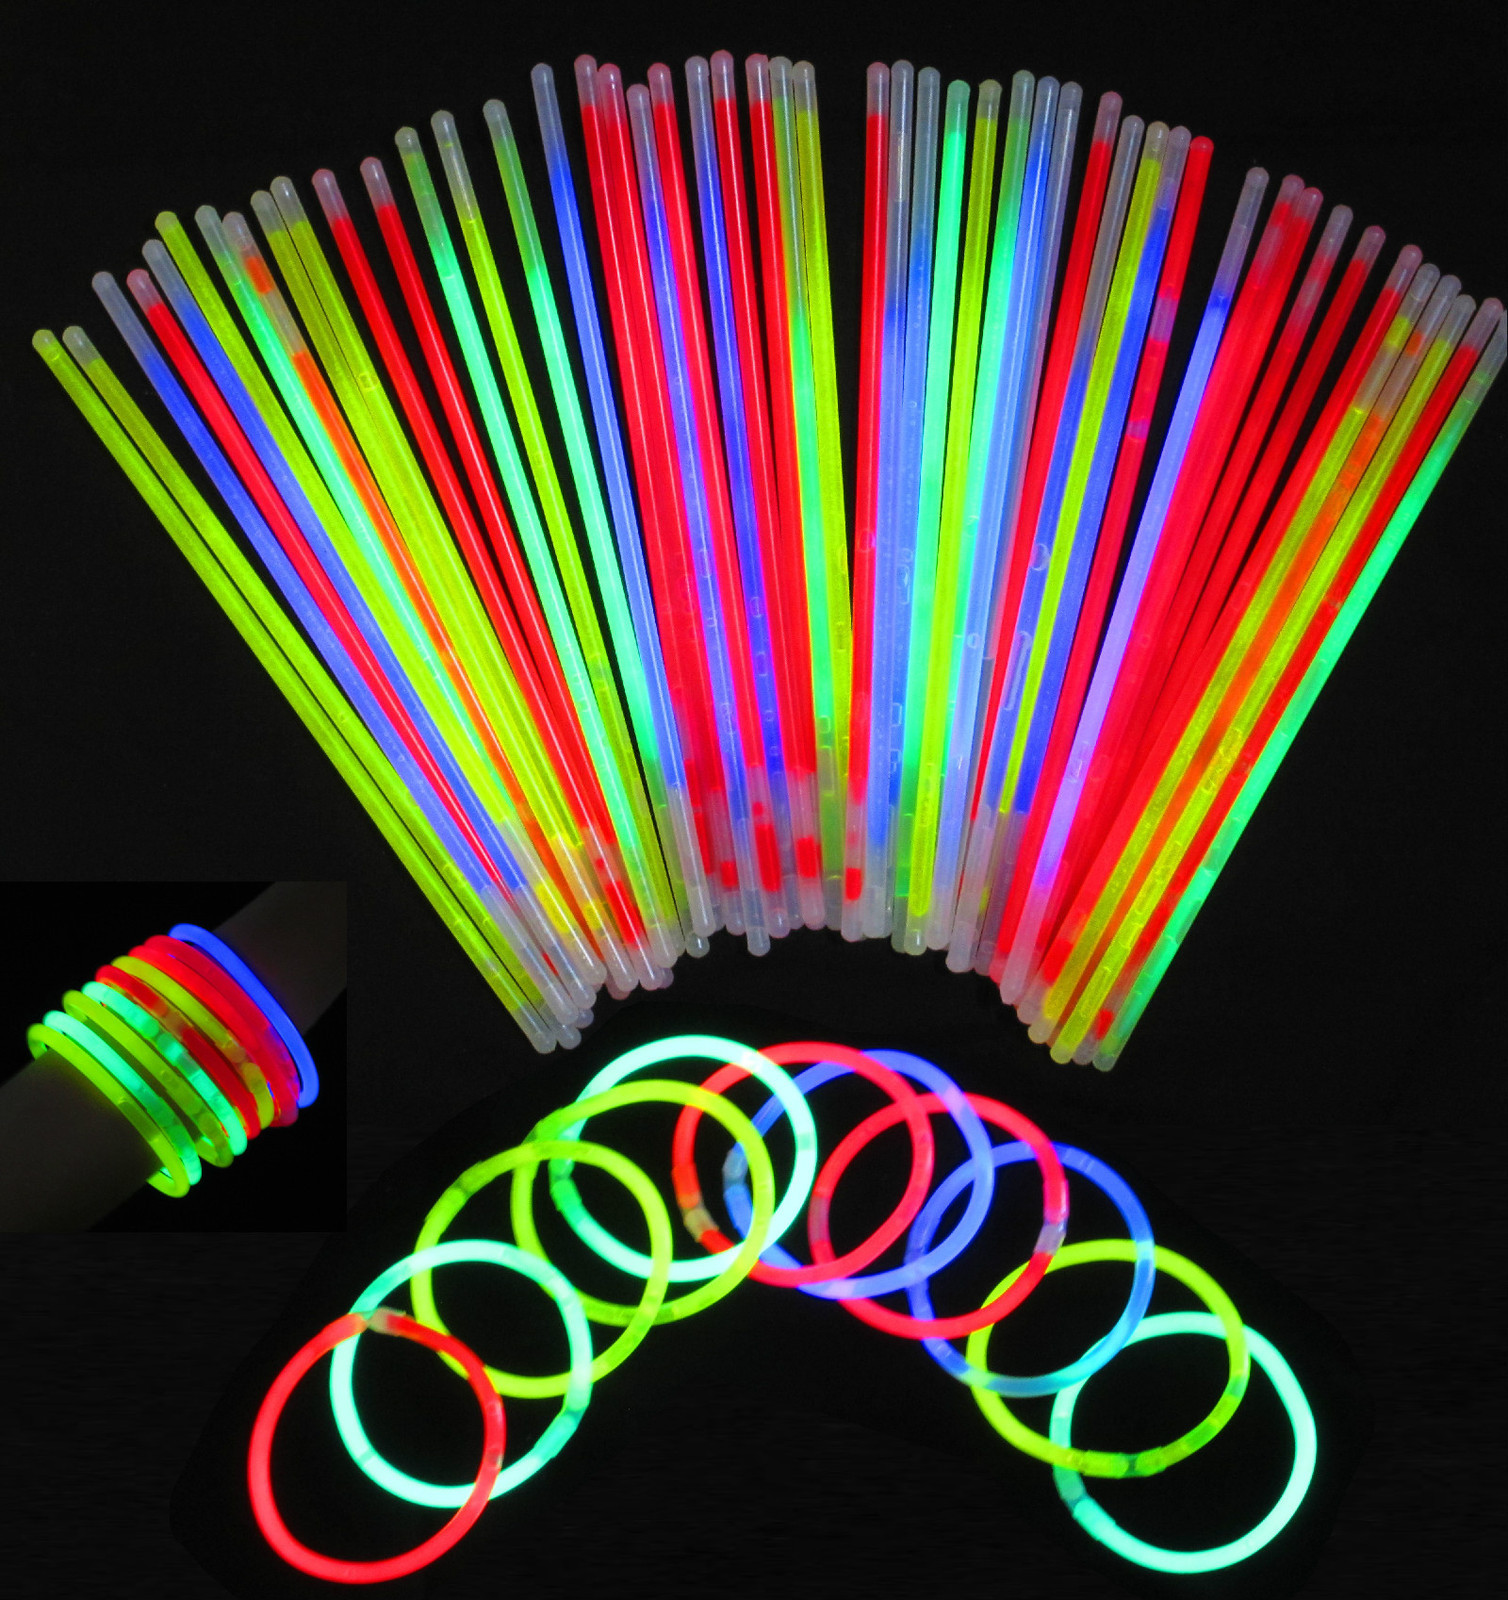 Neon Glow Bracelets Necklaces